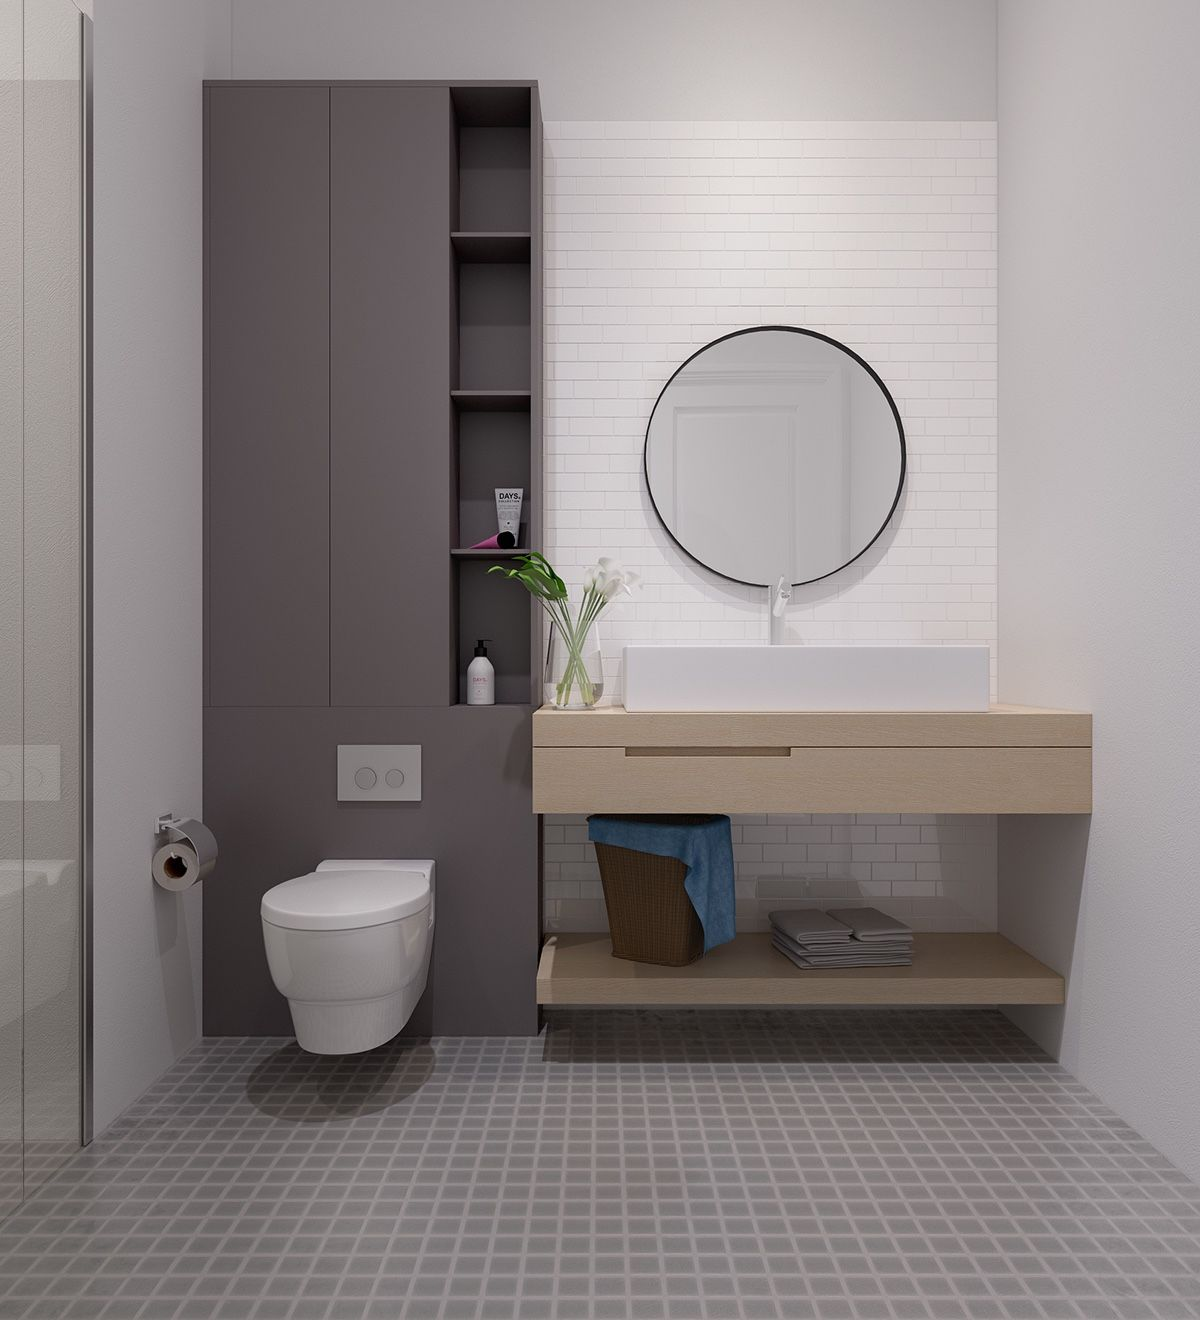 Bagno Design Redbrick Mill Bright Scandinavian Decor In 3 Small One Bedroom Apartments